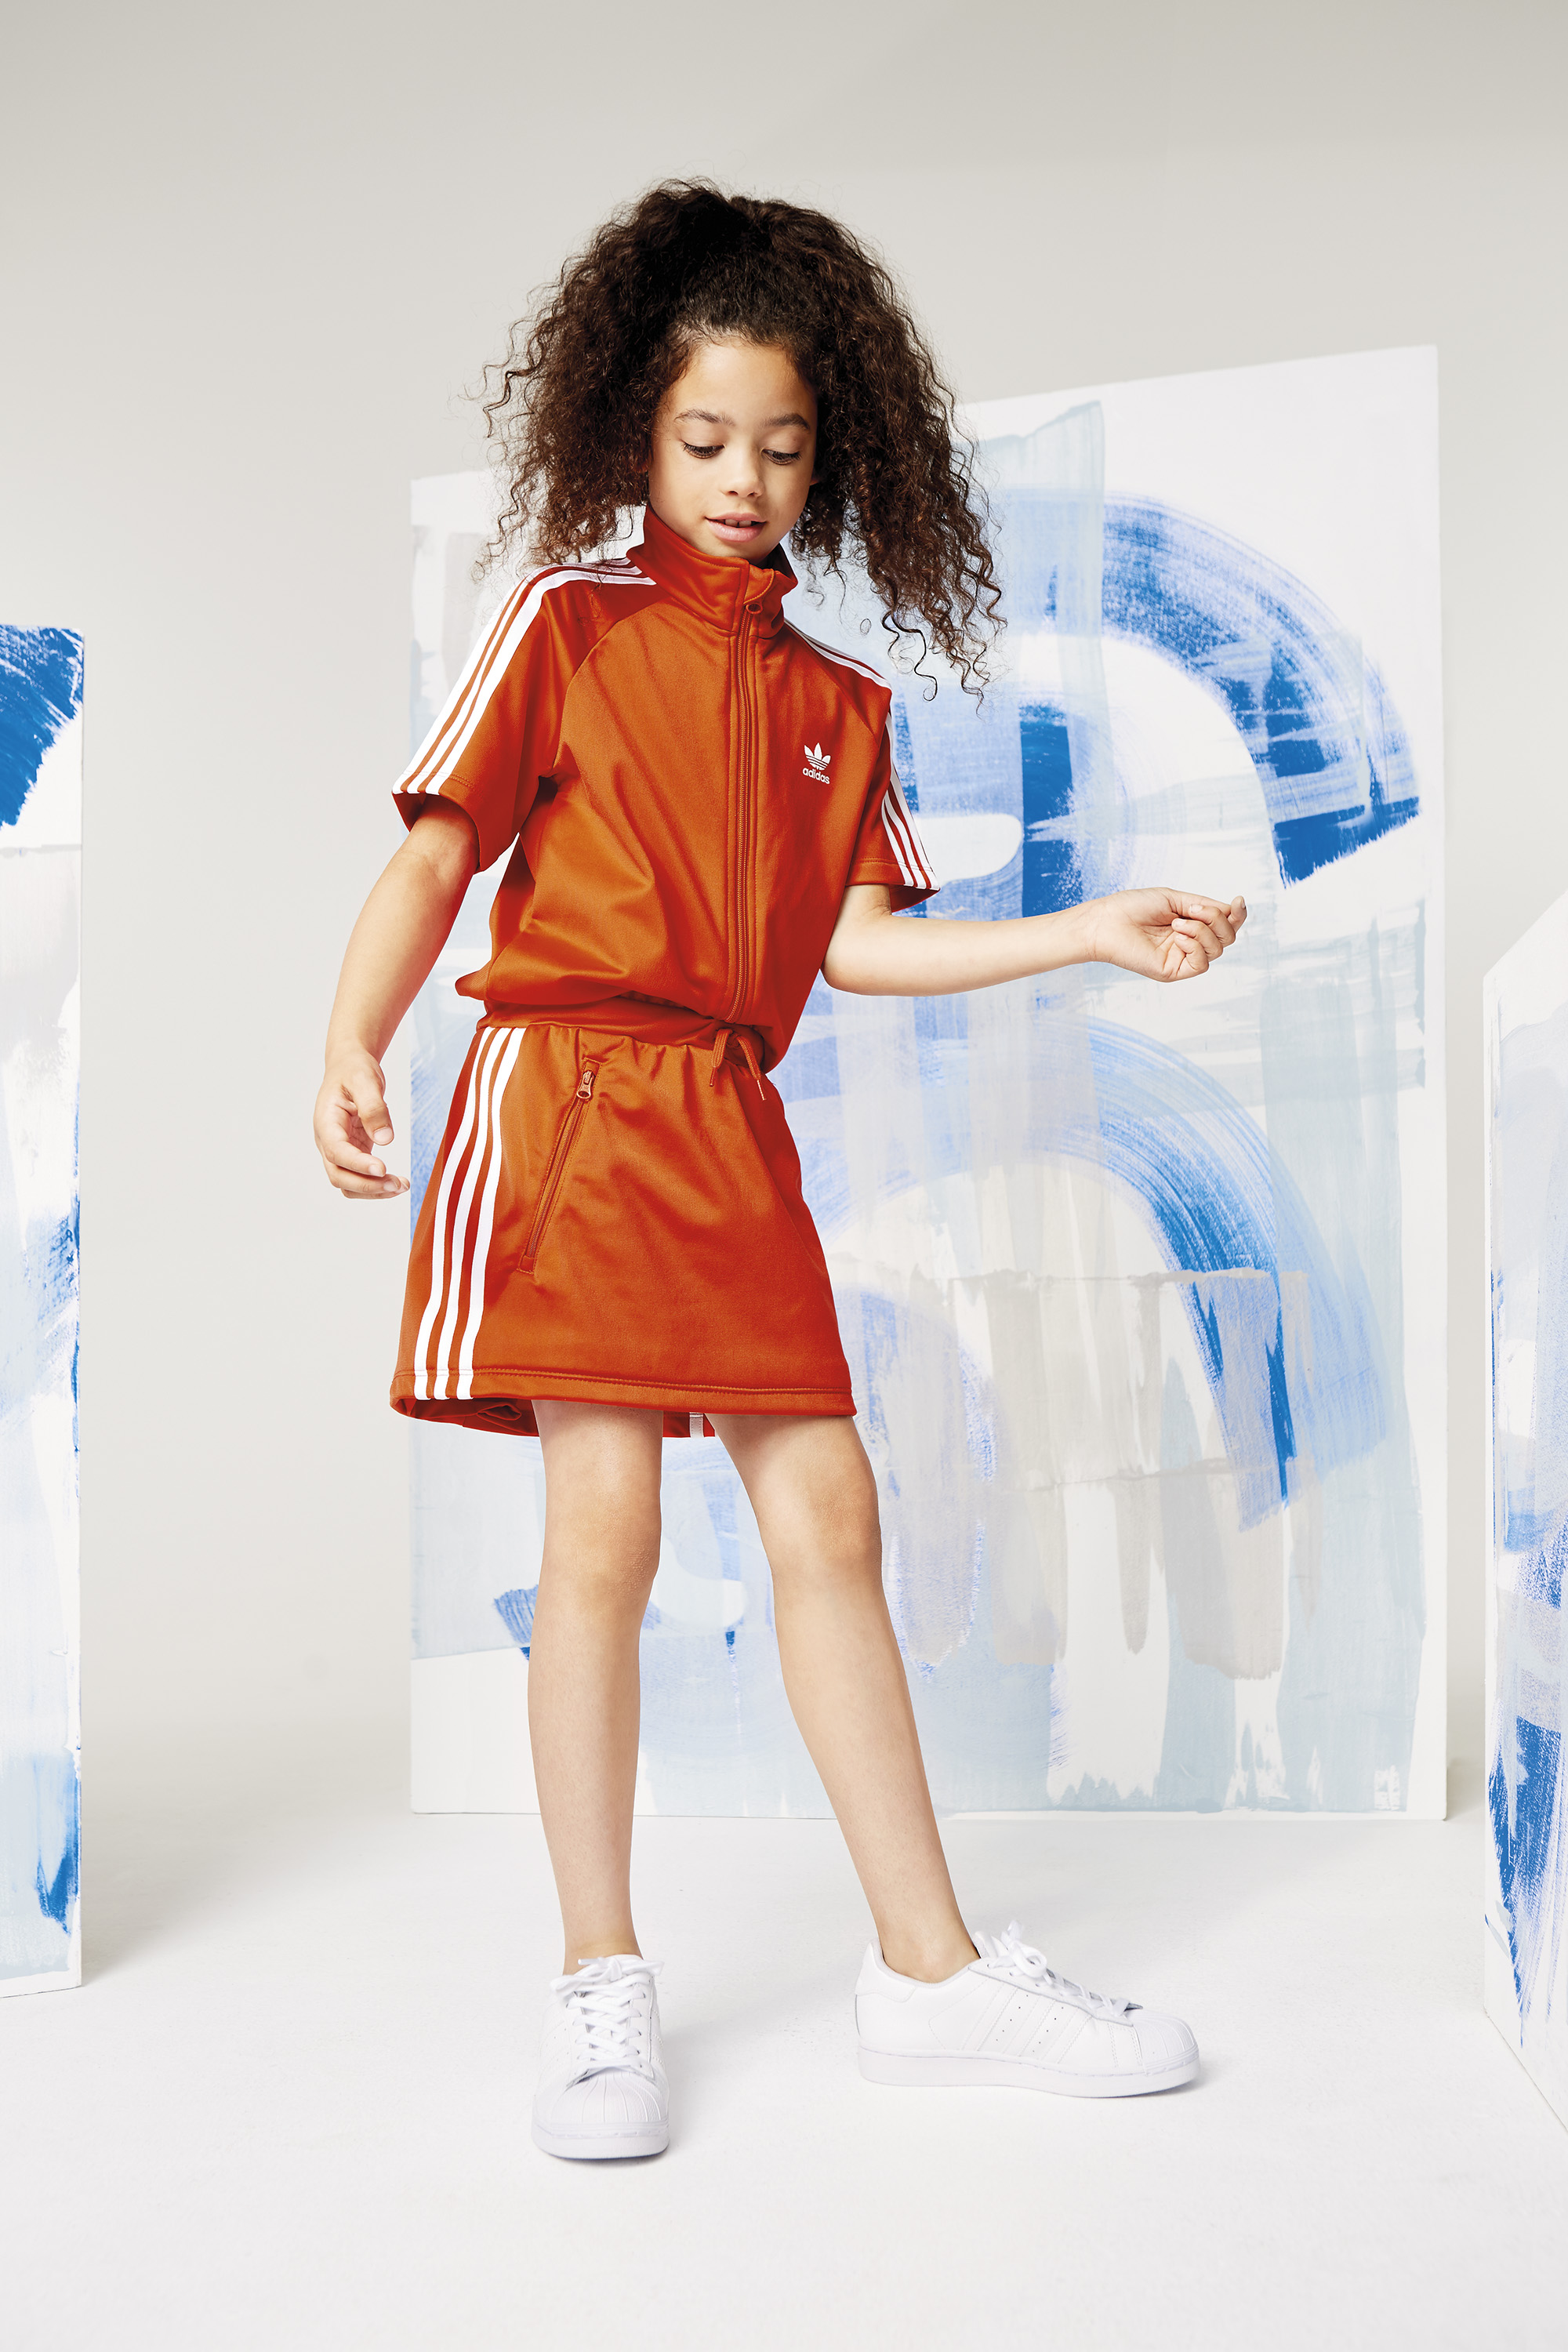 160901_MS_ADIDAS_S12_JUNIORGIRL2_70S_093.jpg